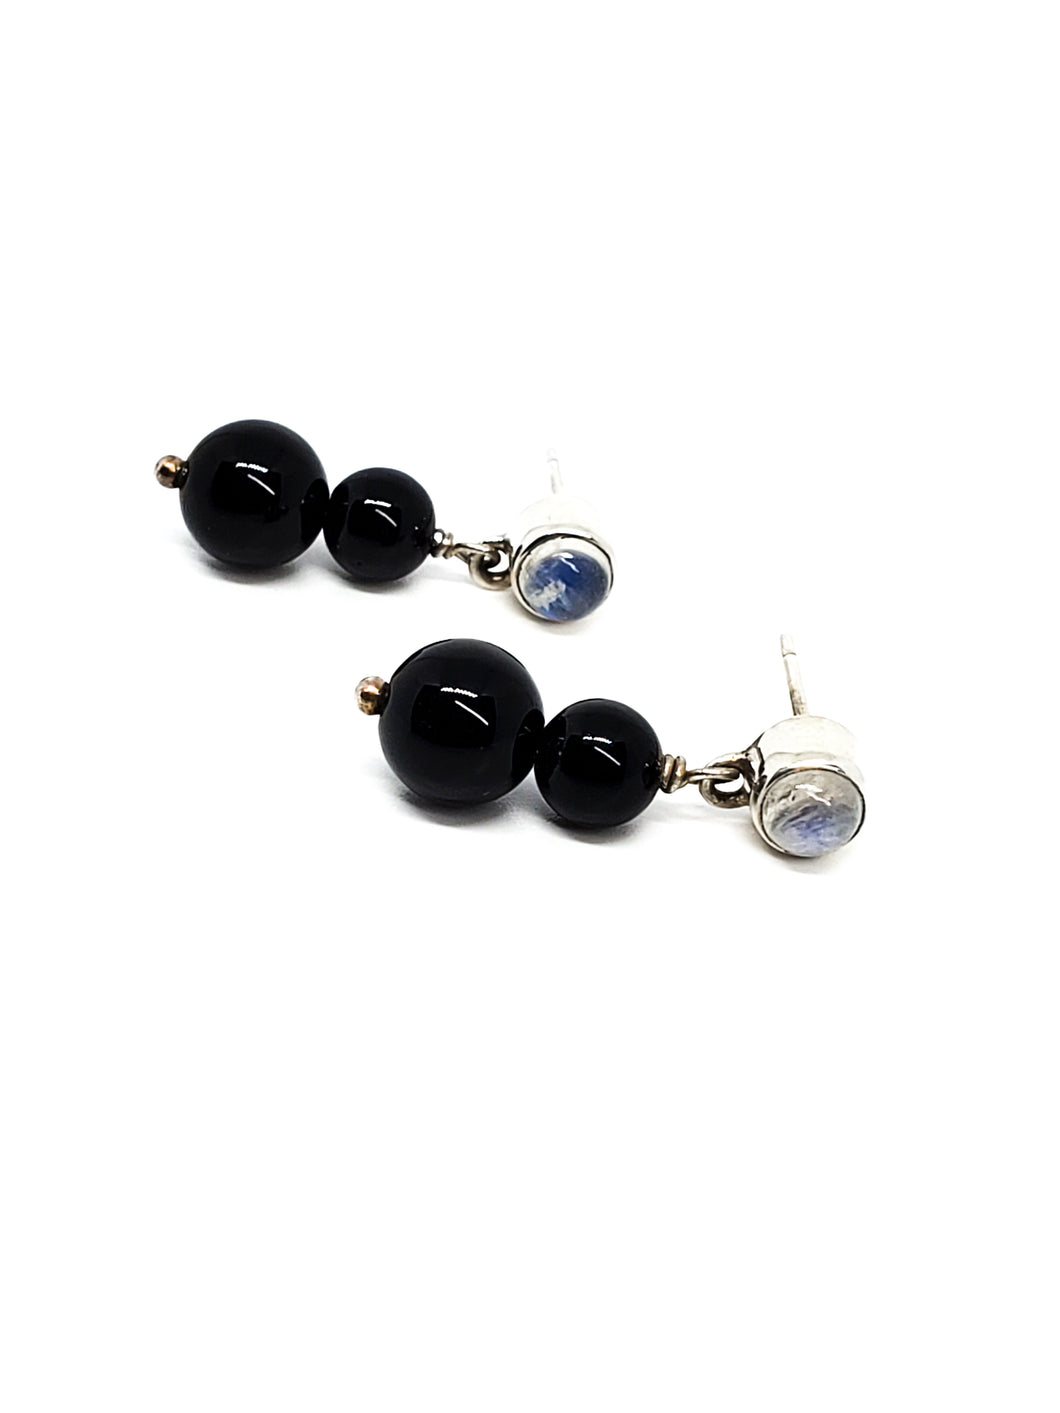 Nikki Butler Blue Moonstone and Black Onyx drop sterling silver earrings 925